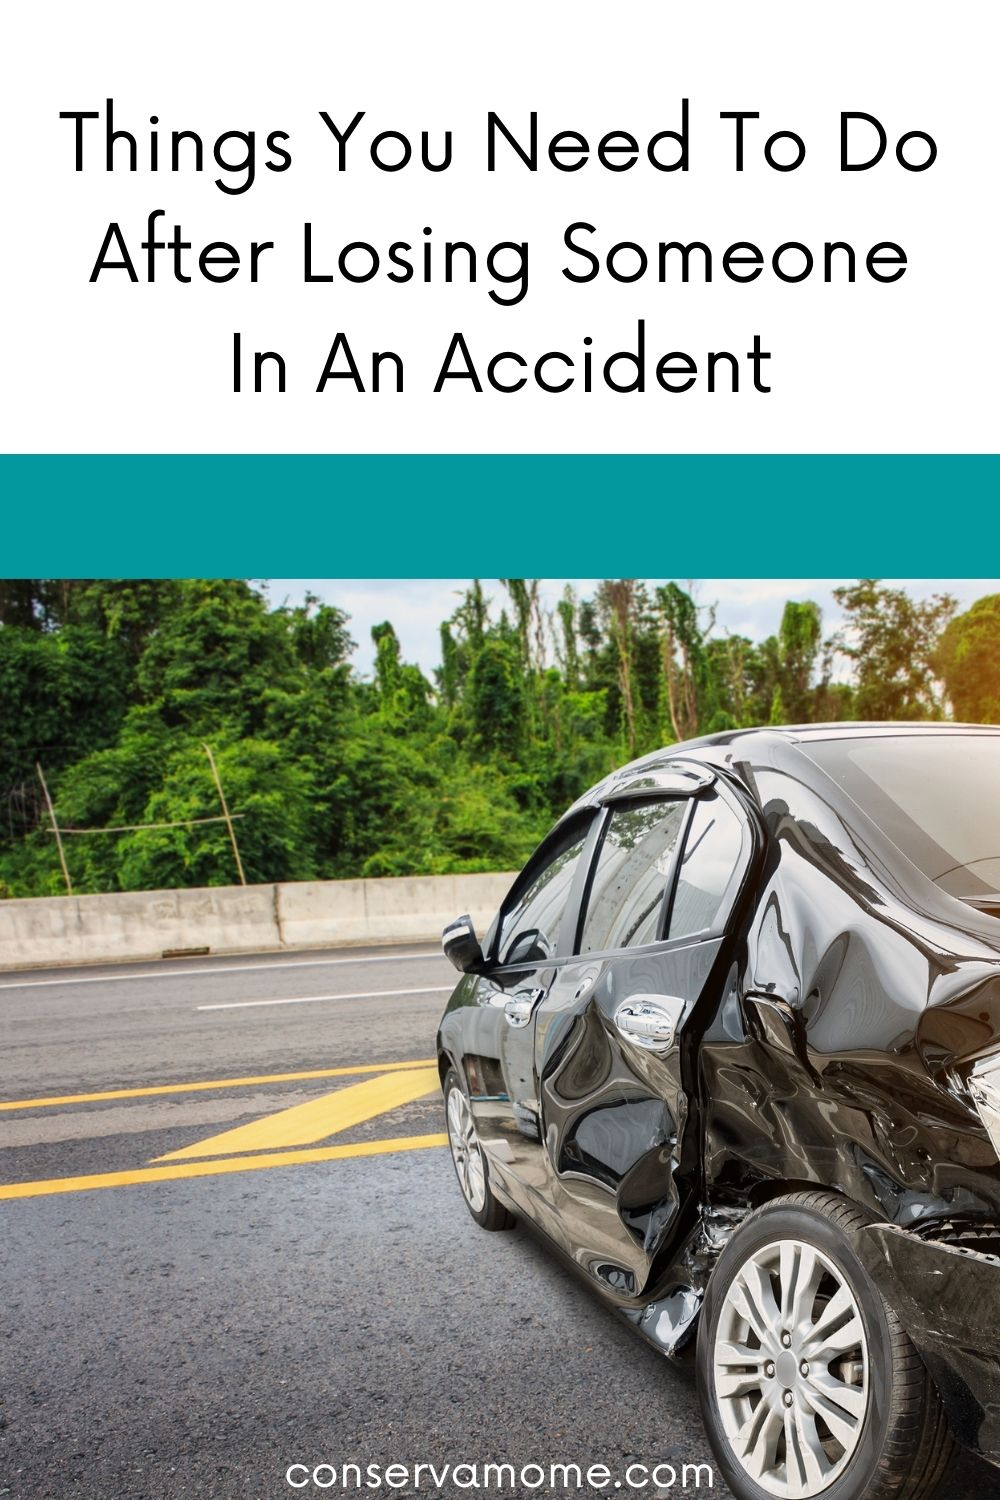 Things You Need To Do After Losing Someone In An Accident